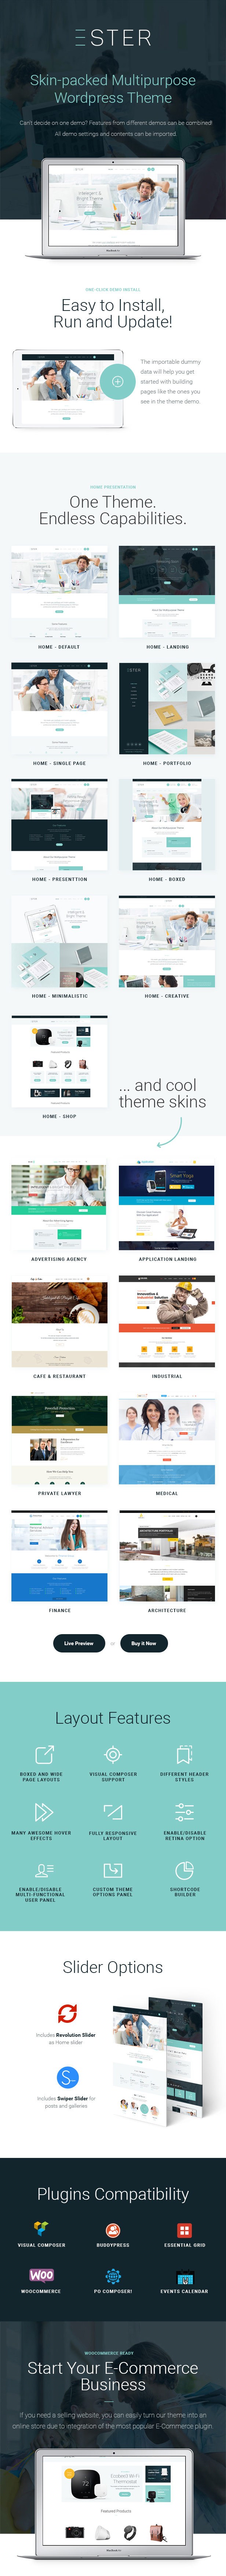 Business WordPress Theme Features